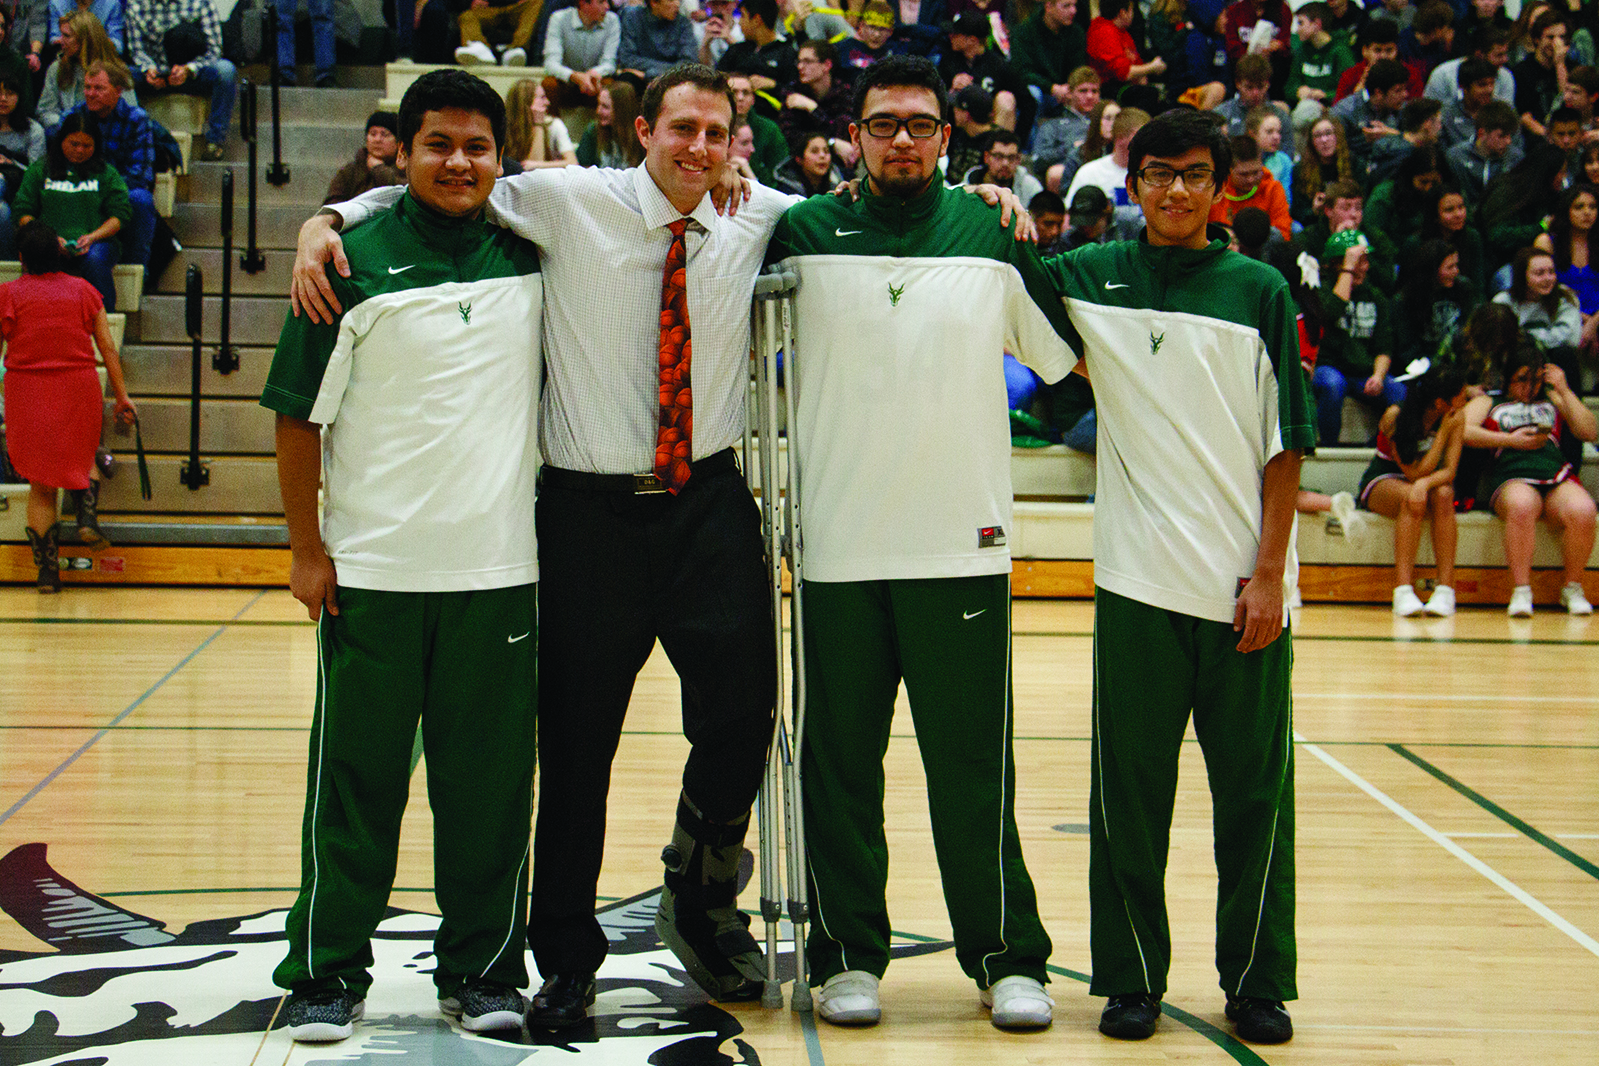 Goats boys' varsity basketball seniors (left to right) Jose Torres, Santiago Jimenez, Miguel Rojas, with Head Coach Jeff Pearl (second from left).